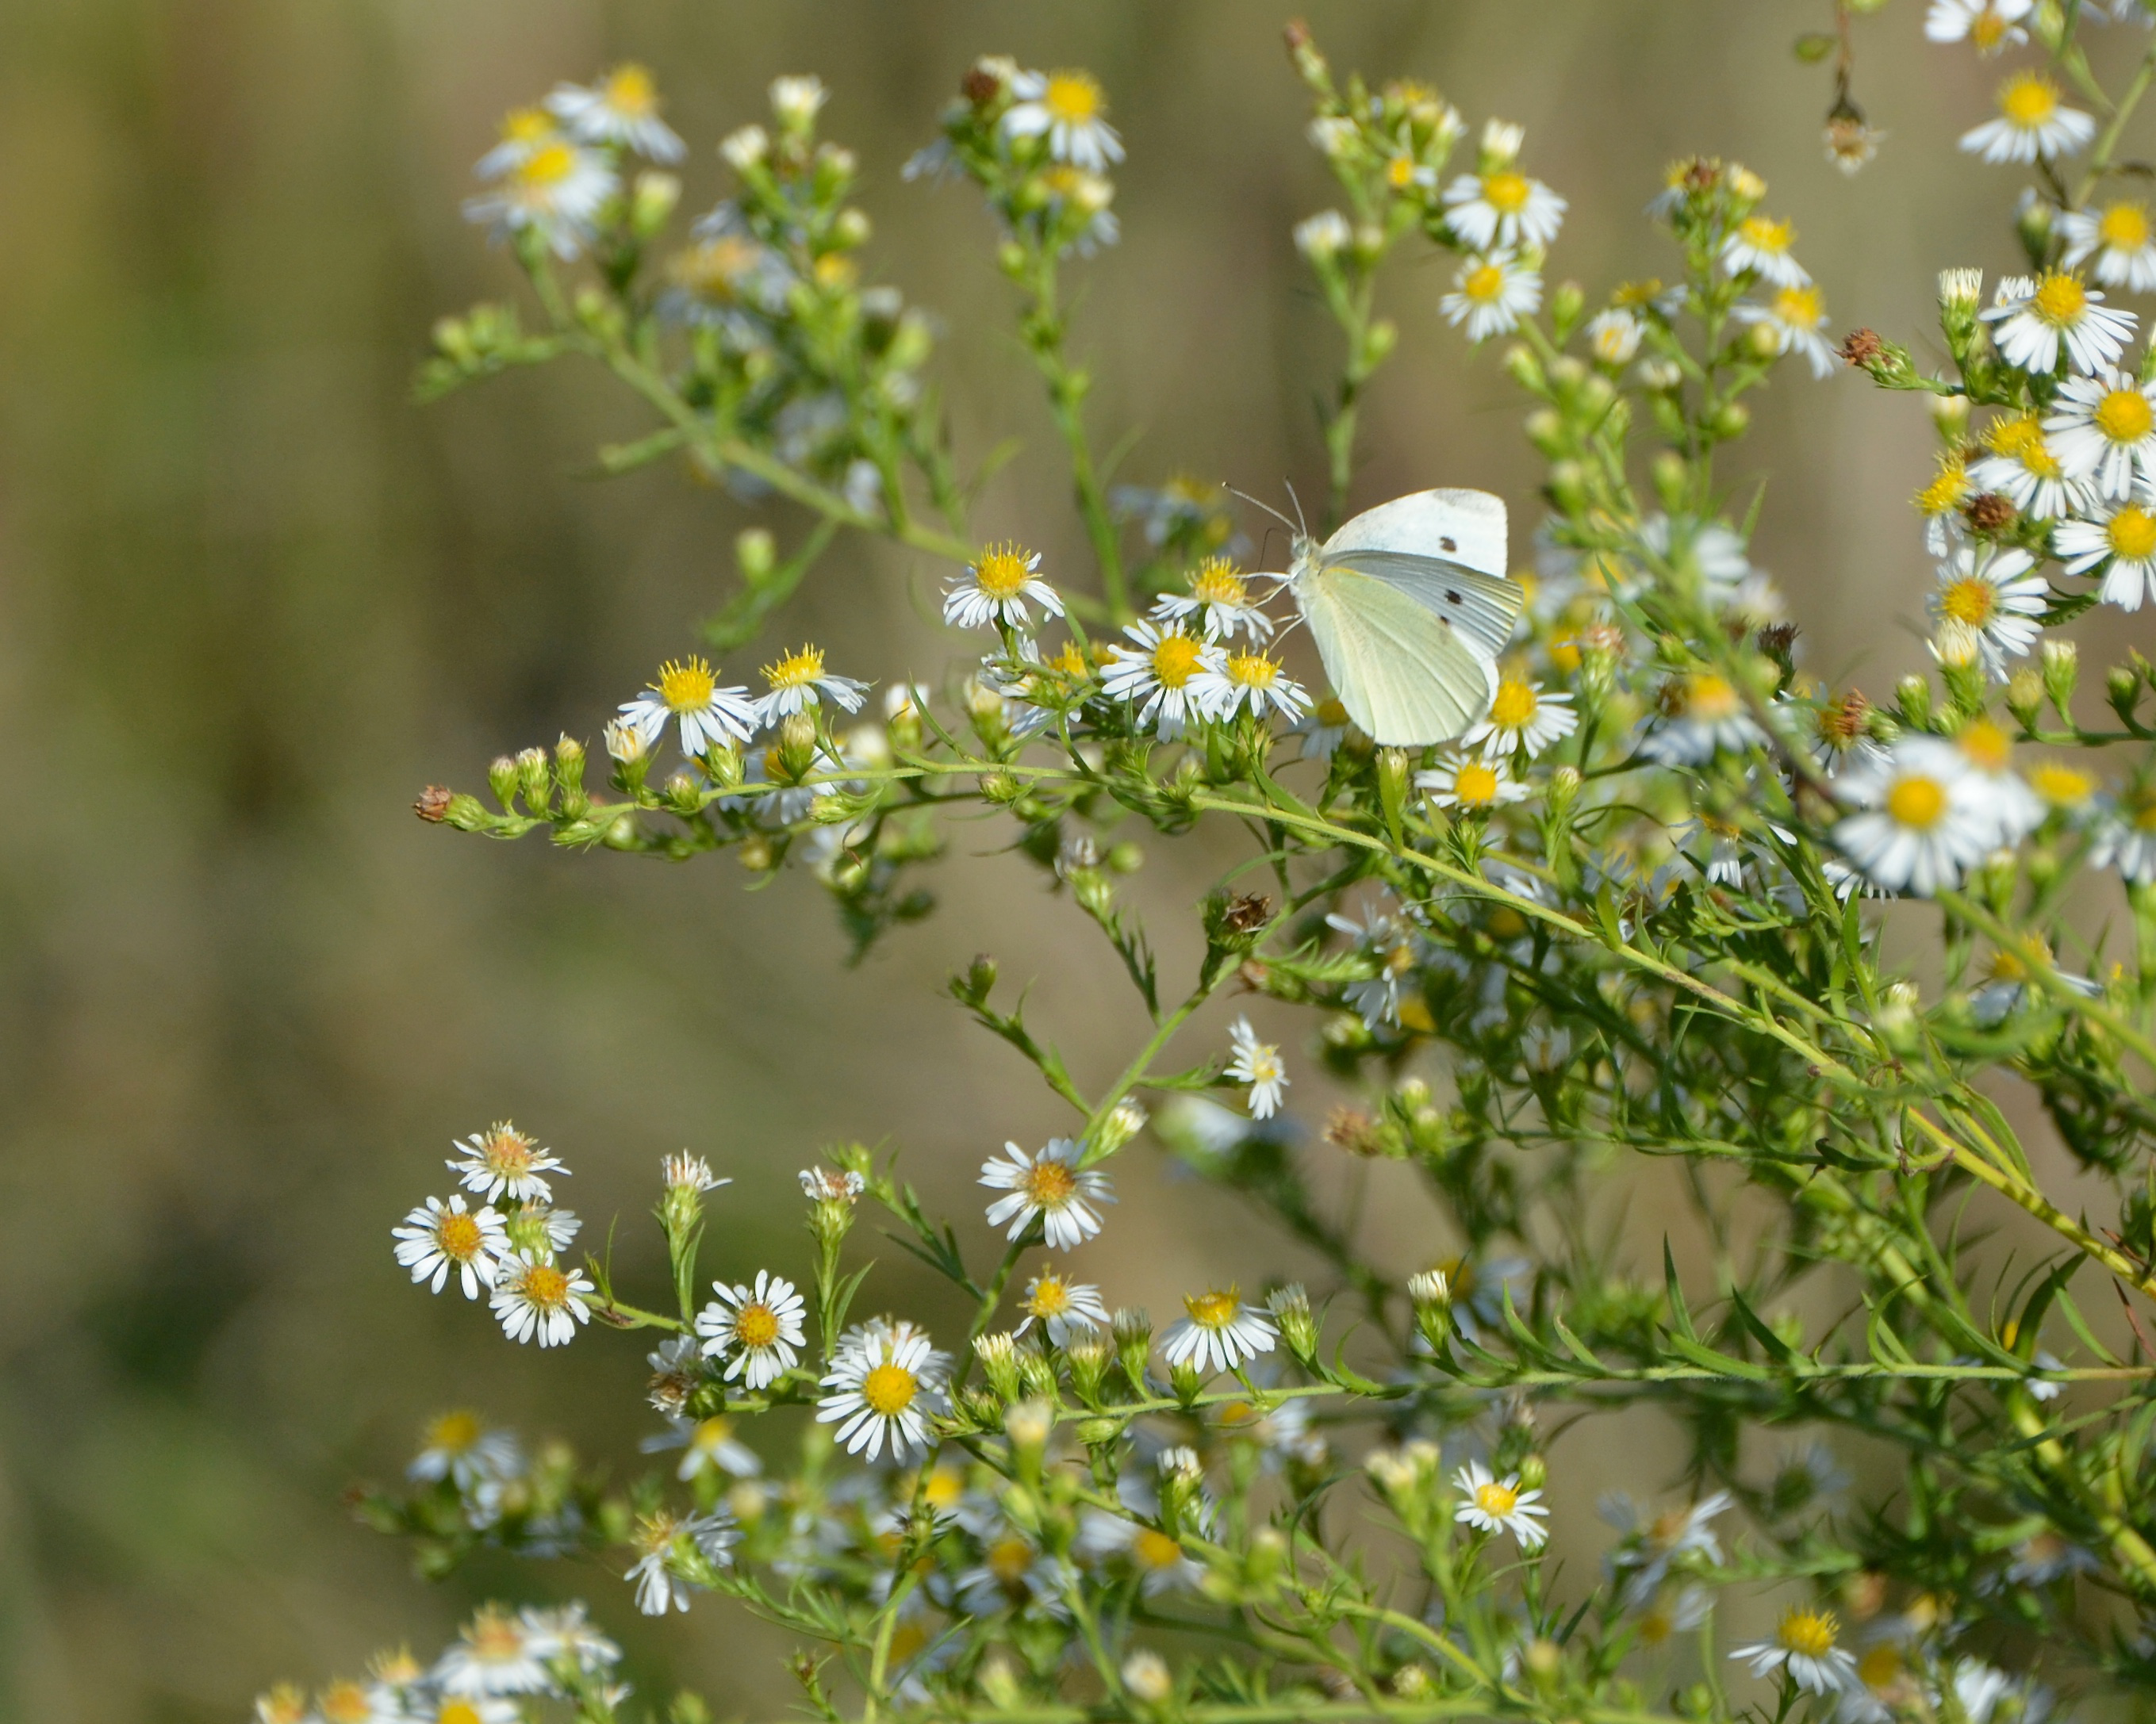 The cabbage white butterfly.